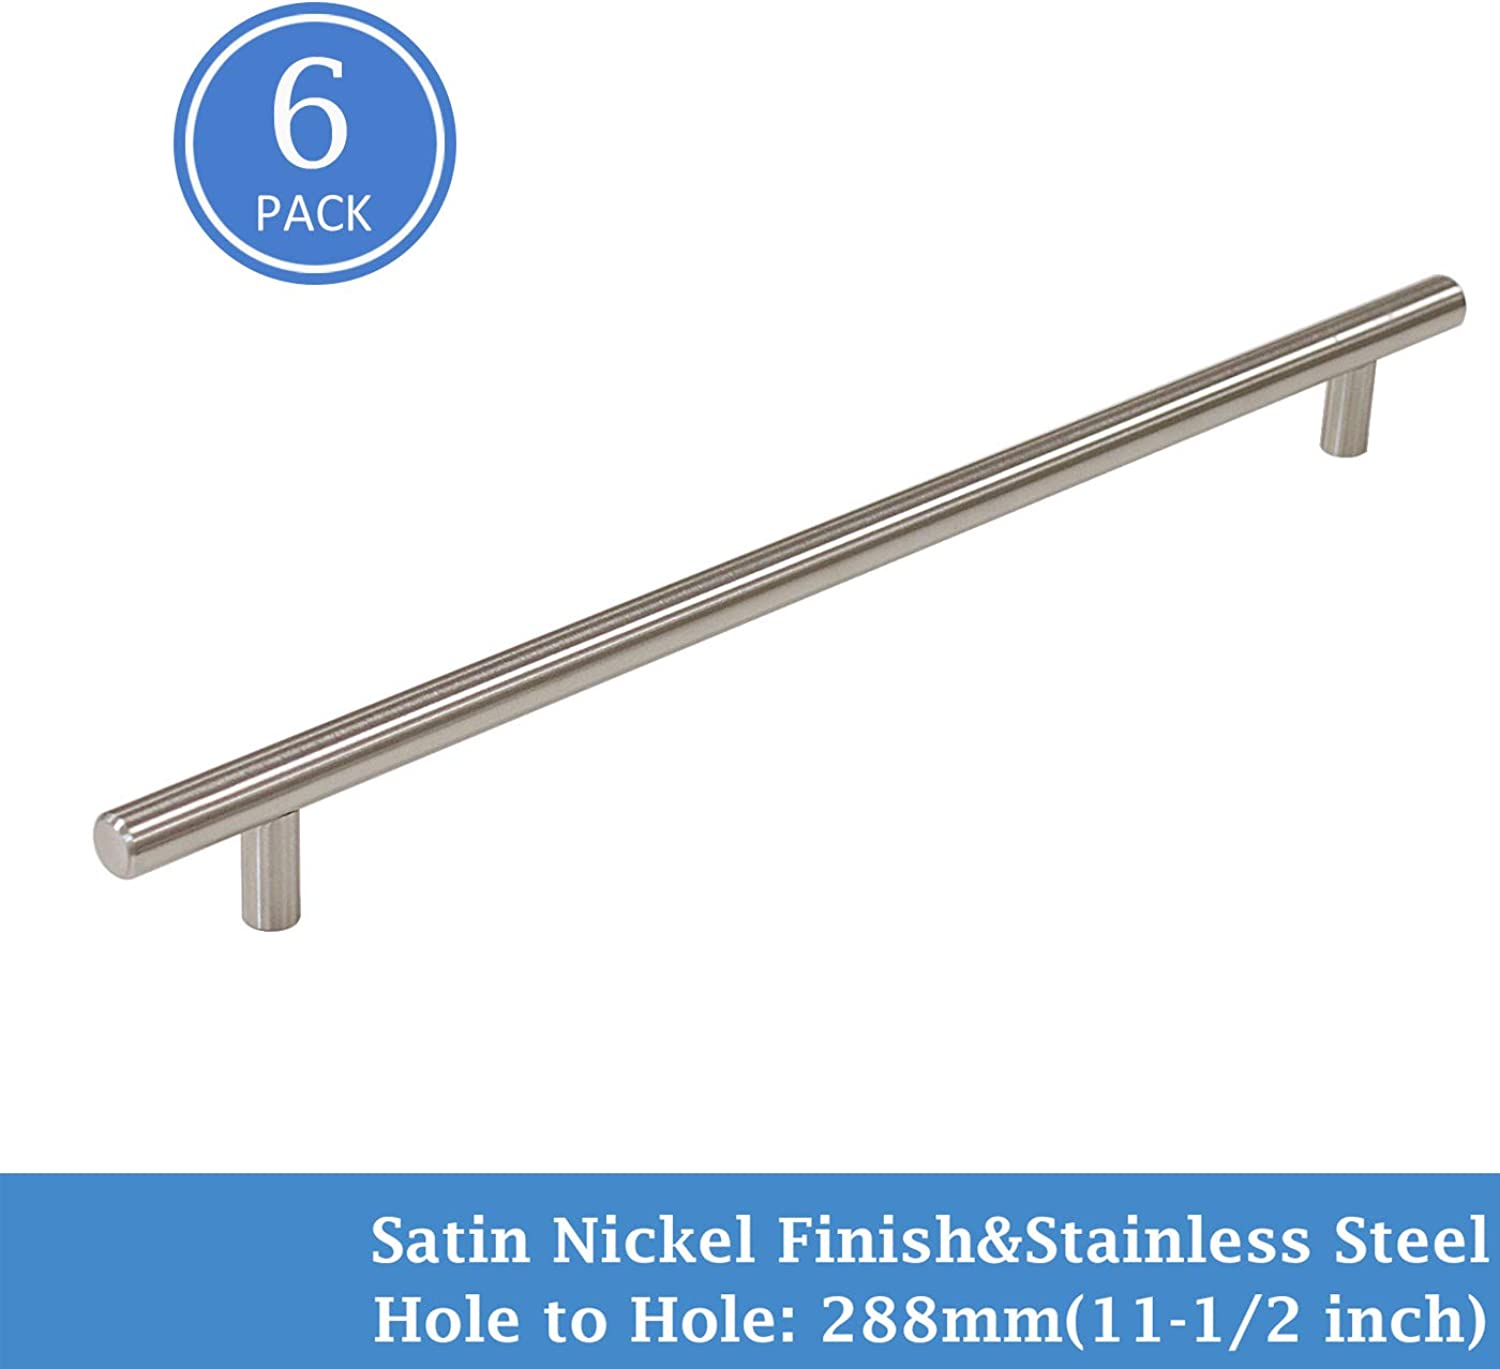 11-1 2  Hole Spacing Satin Nickel Finish T Bar Cabinet Pulls Stainless Steel Kitchen Cupboard Modern Style Handles, 6 Pack